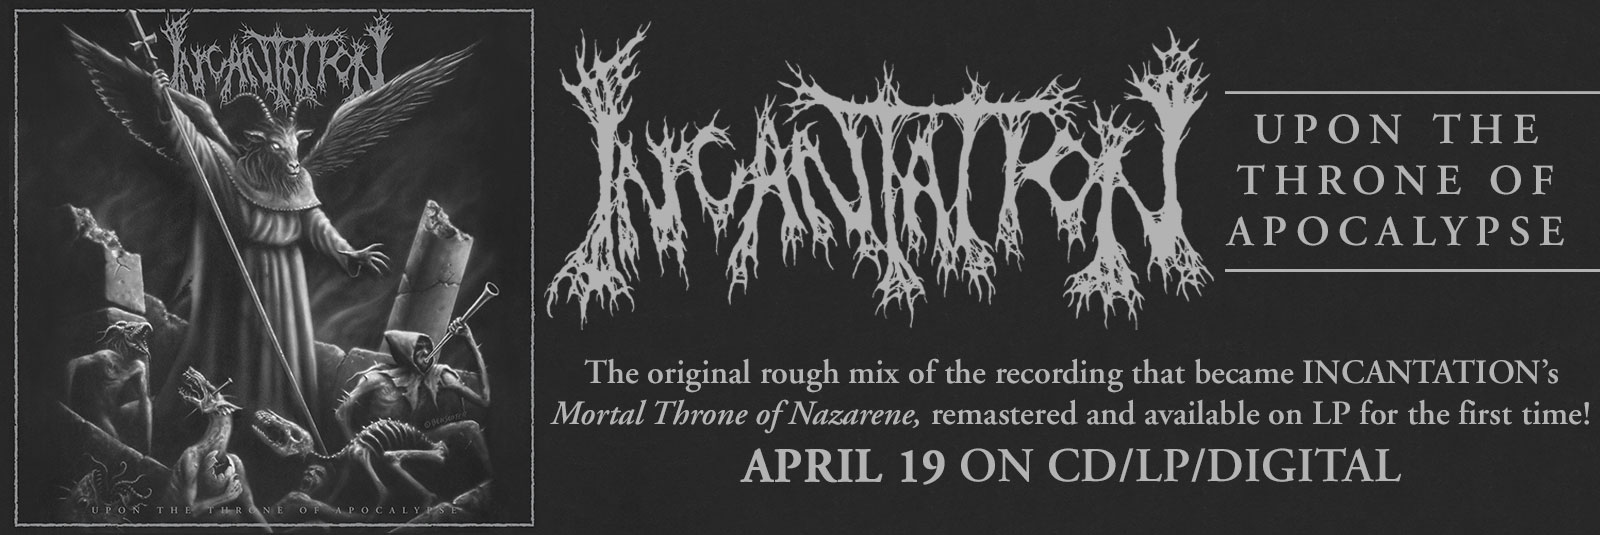 Incantation-Upon-the-Throne-of-Apocalypse-Death-Metal-Reissue